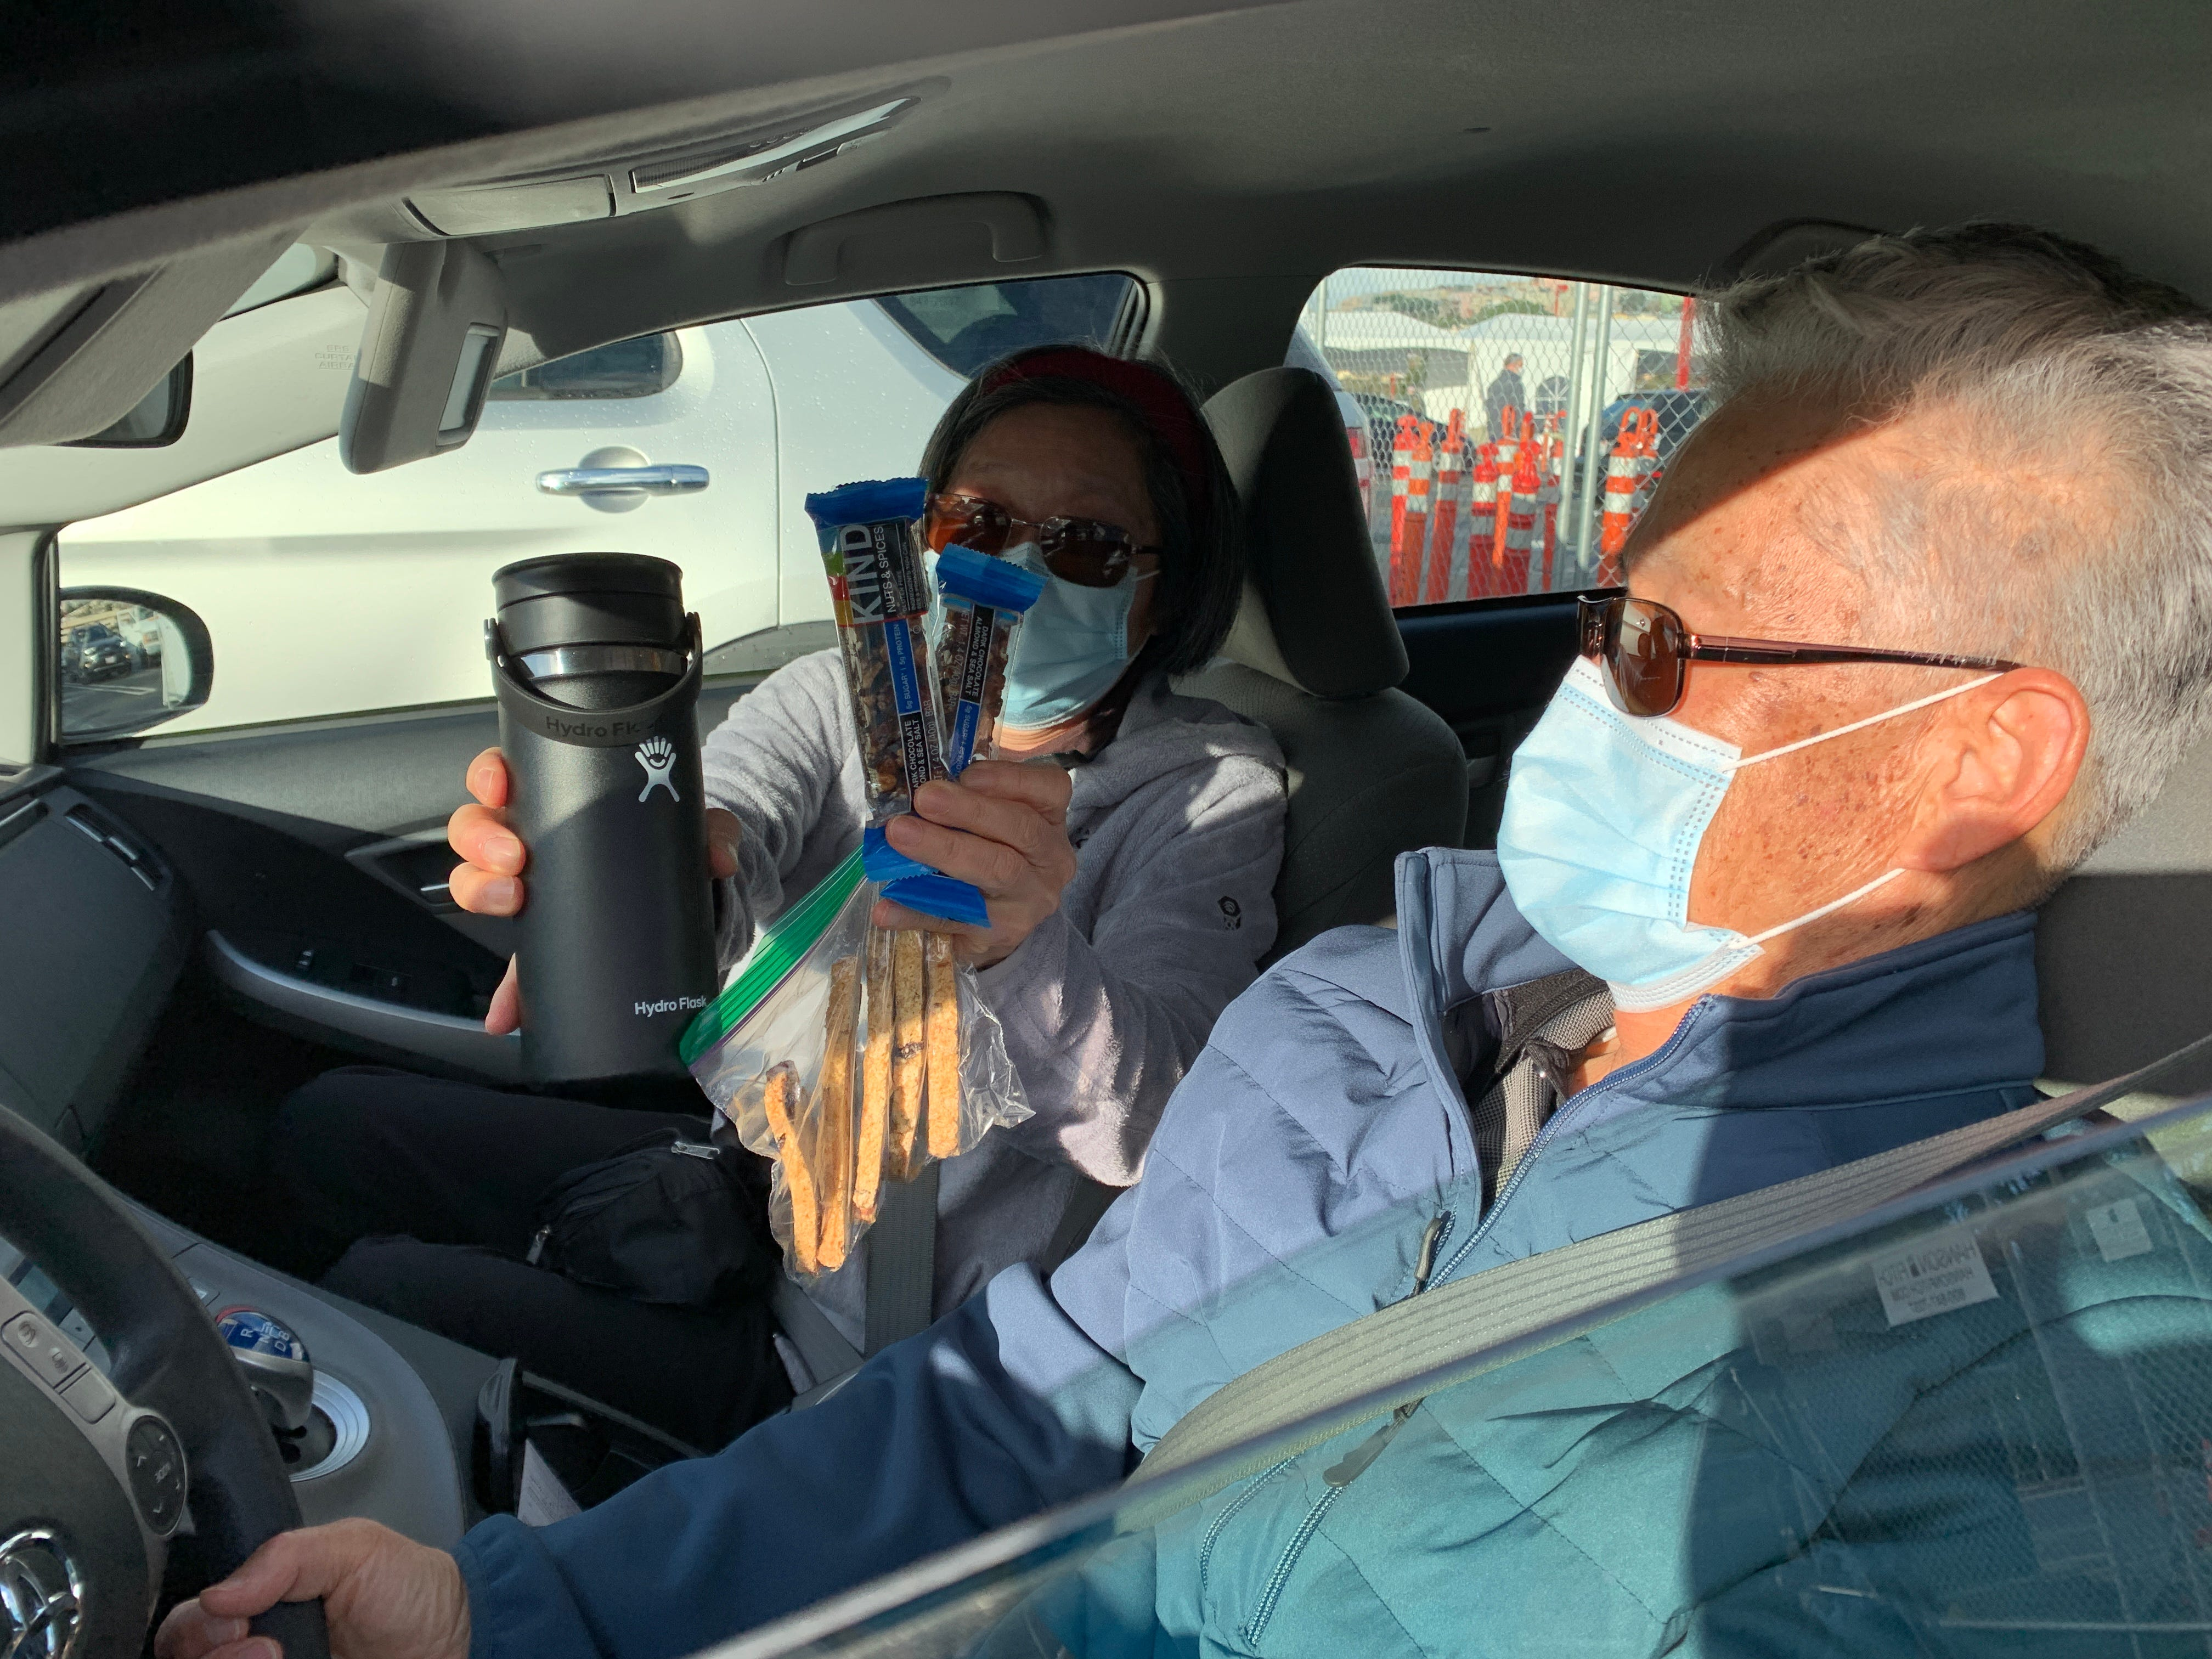 Inja Kim, 72, shows the snacks she brought in expectation of a long wait to get the COVID-19 vaccine for her husband Kwang Kim seated next to her. The couple made it through San Francisco's mass vaccination clinic on January 22, 2021 in just 25 minutes.